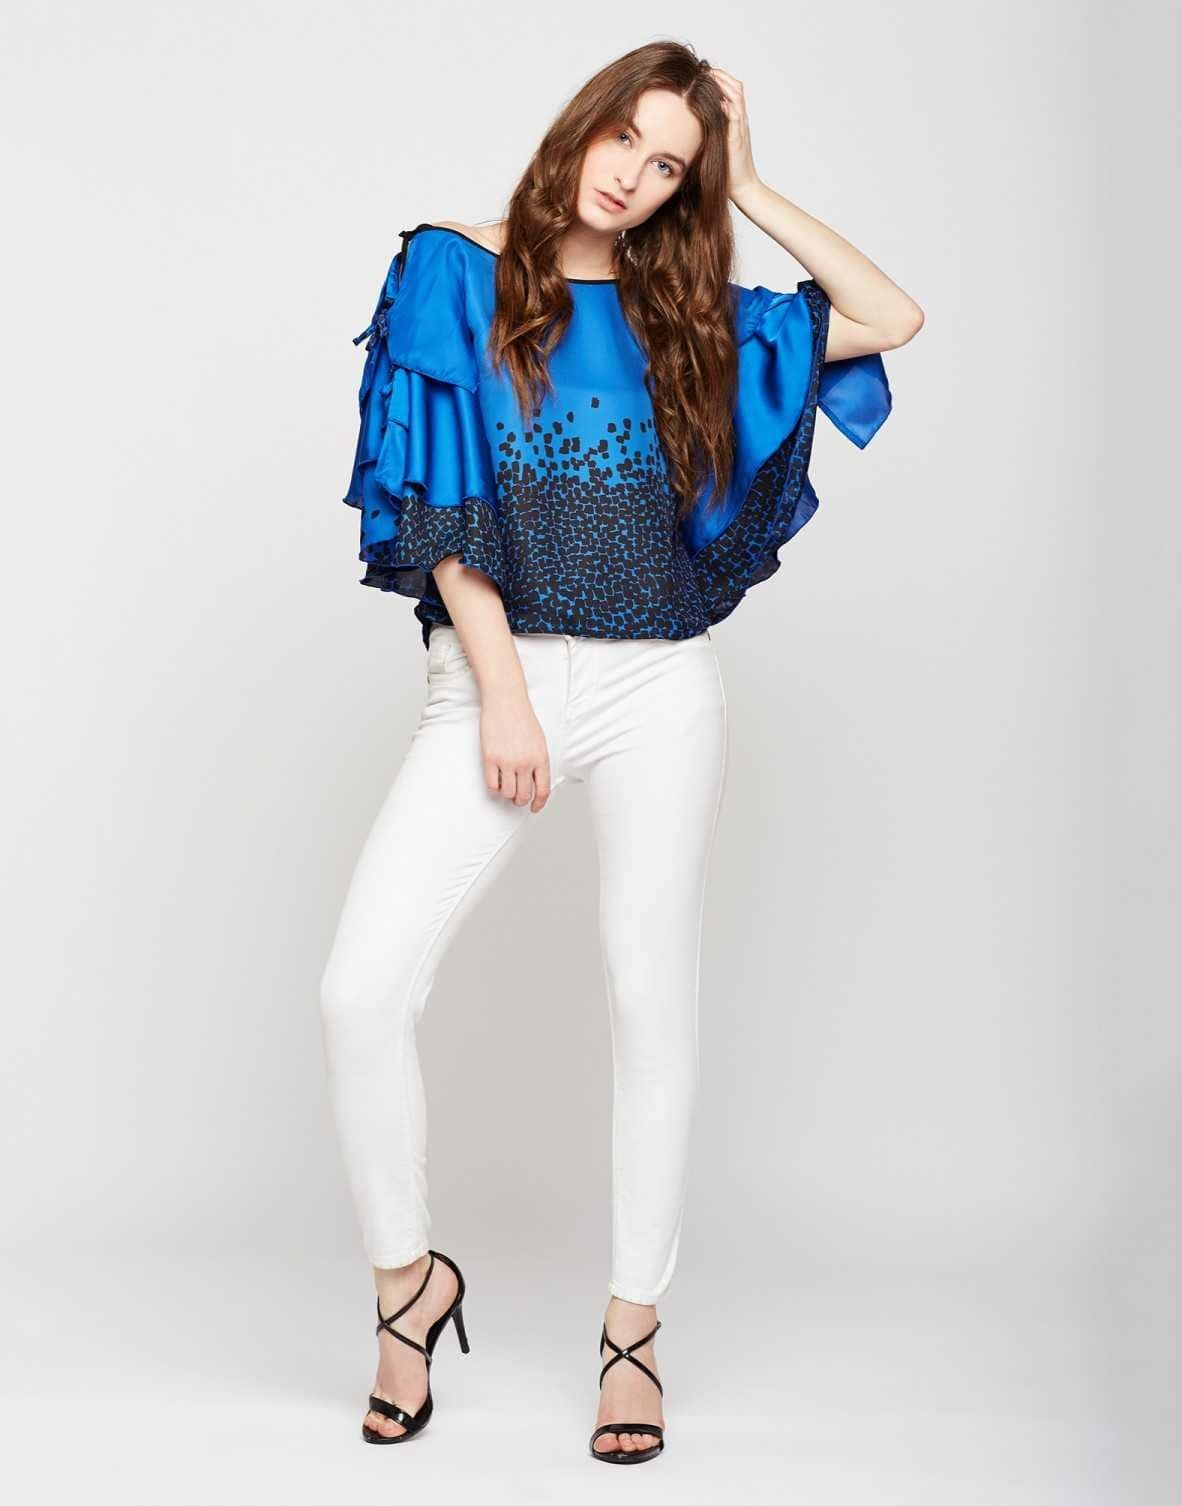 Madame - Blue Printed Top  Link: https://bit.ly/2MzYCFj  #Madame #Roposo #madamecollection #girlstop #be-fashionable  #Roposodiaries #madamediaries #madamecollection